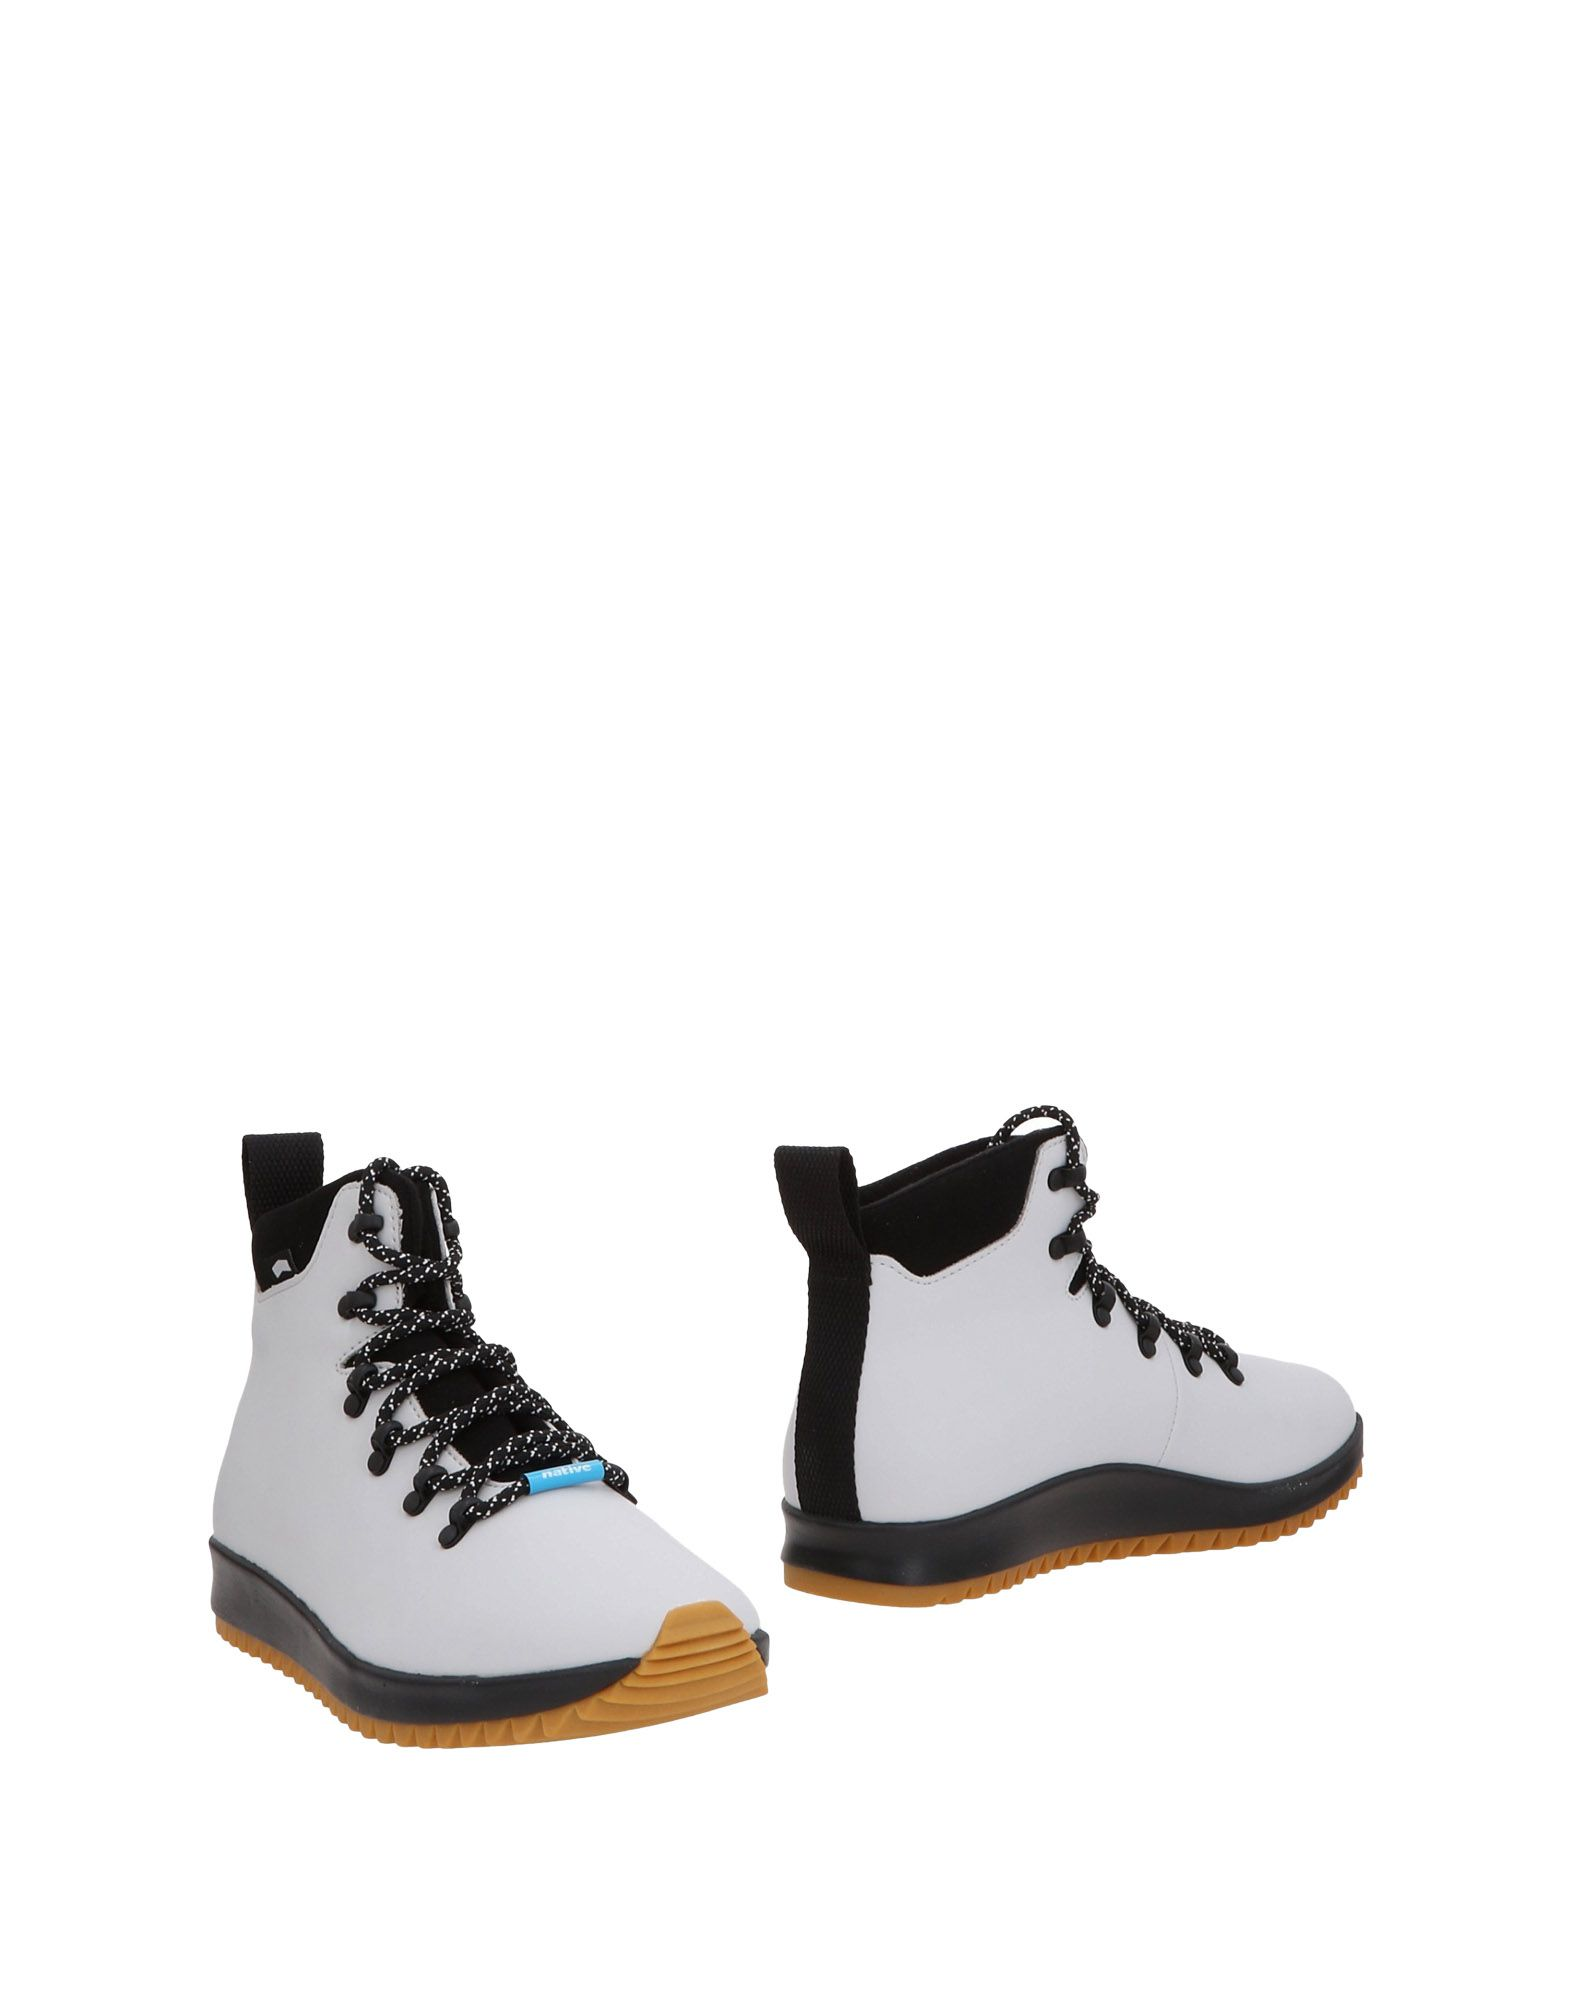 NATIVE Boots in Light Grey